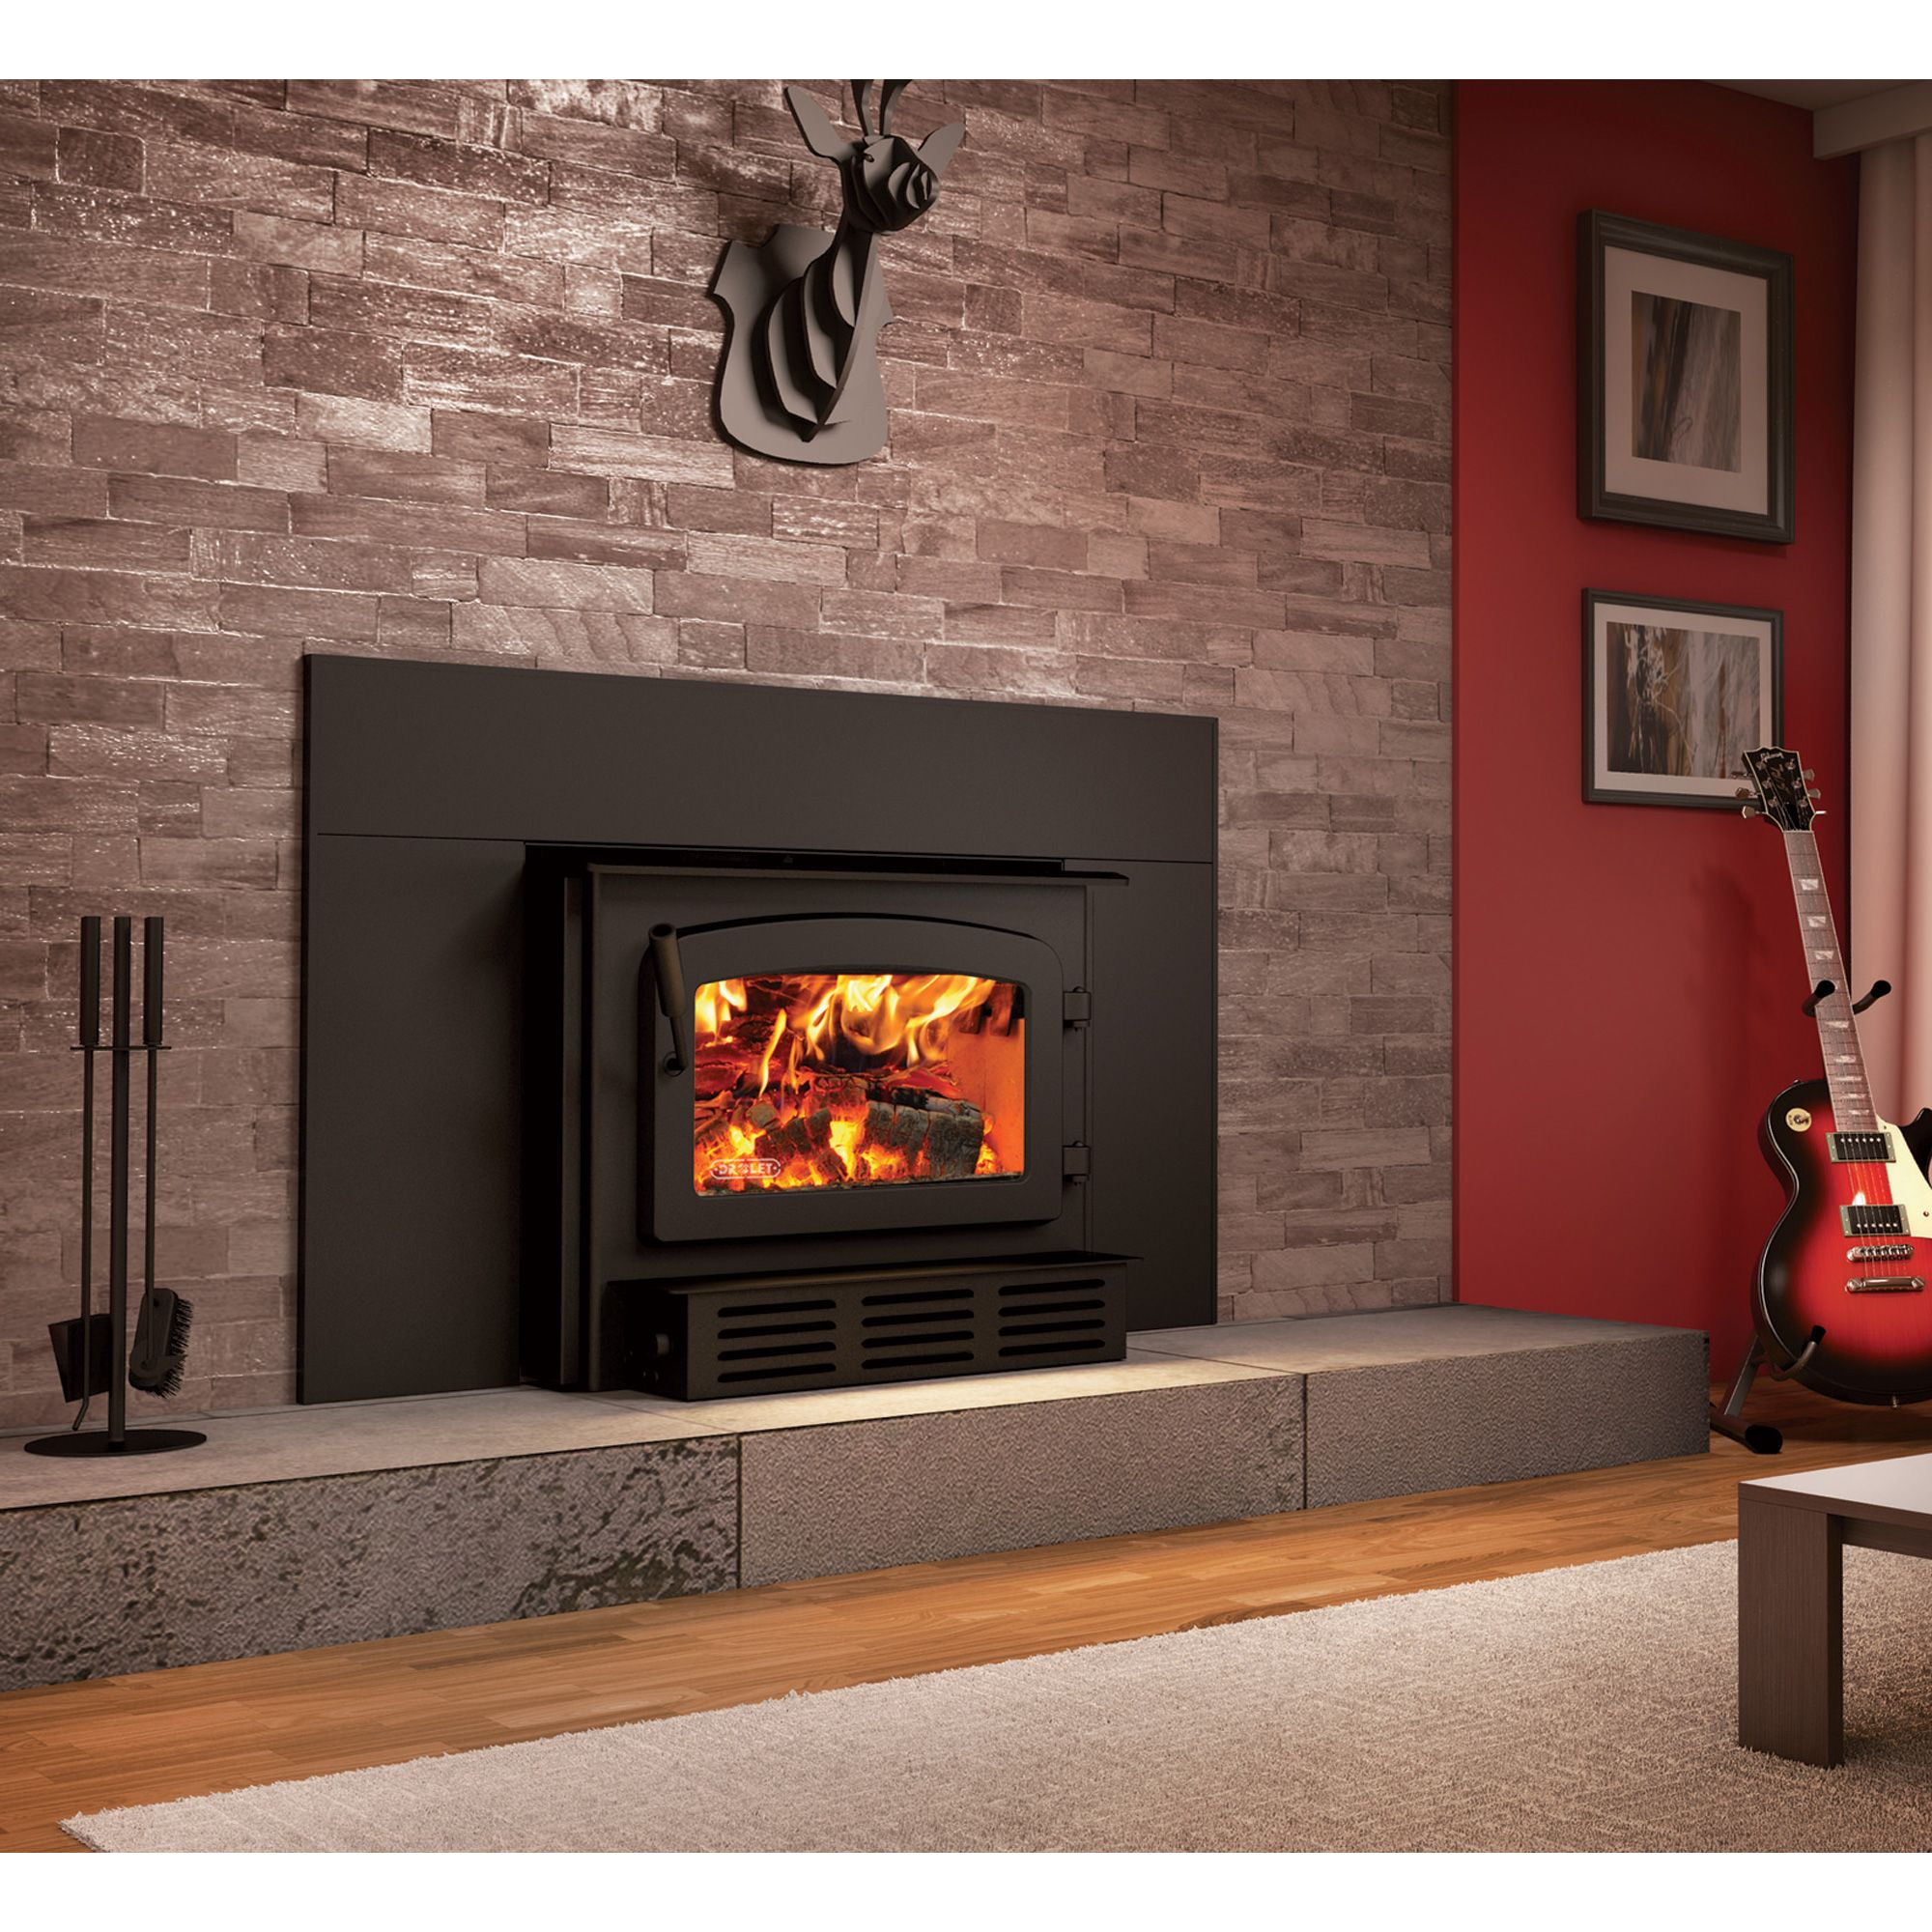 drolet escape 1800i fireplace wood insert 75 000 btu epa